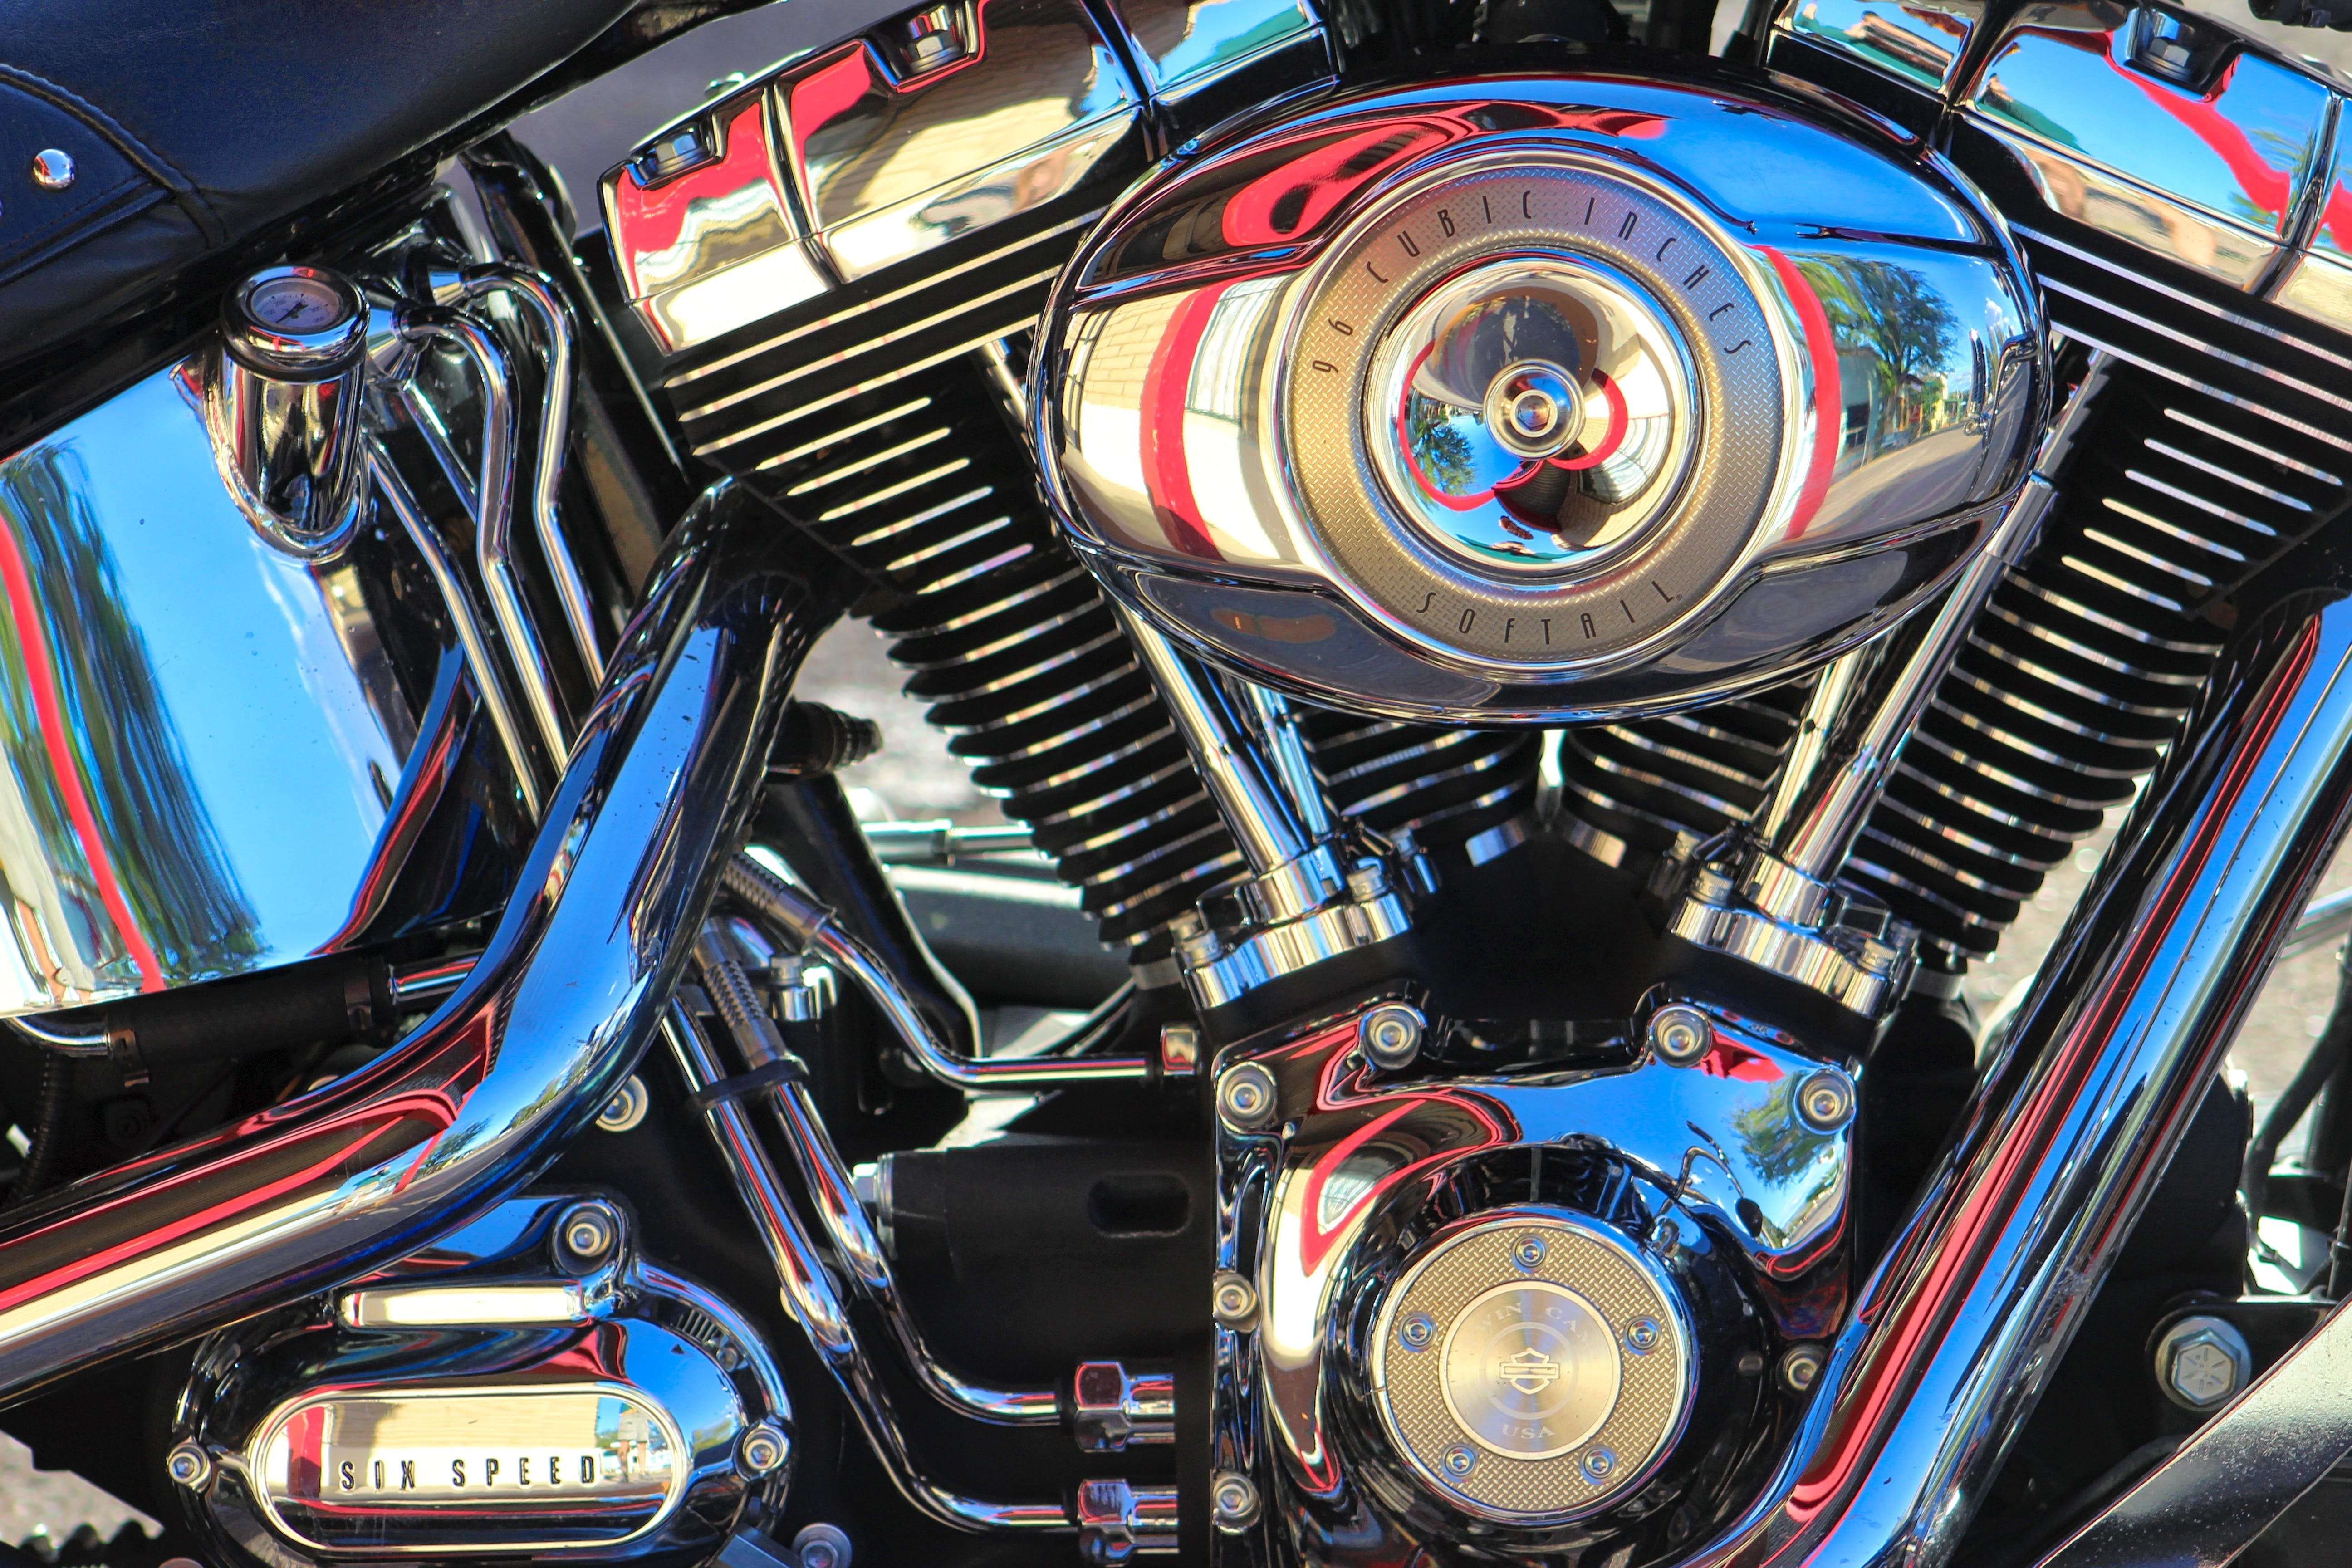 Free stock photo of motorcycle engine